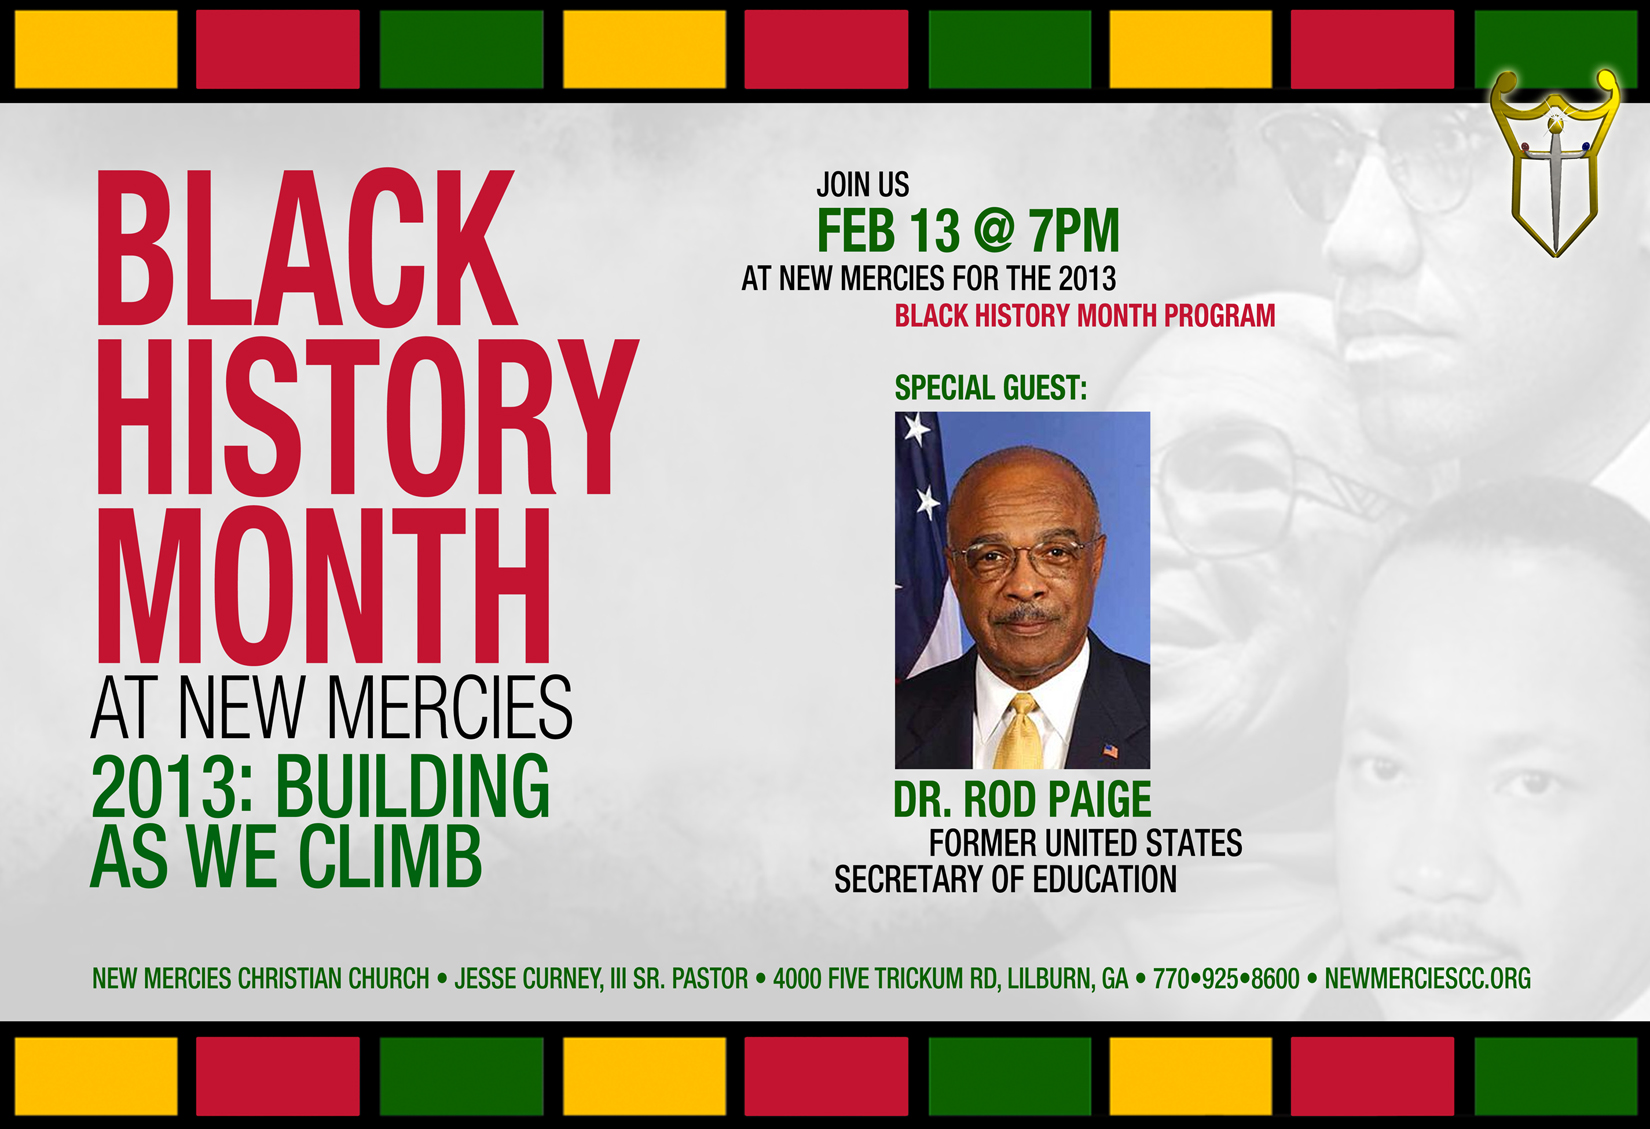 U.S. Secretary of Education Rod Paige - 2013 Black History Month Program - New Mercies Christian Church - Lilburn, GA